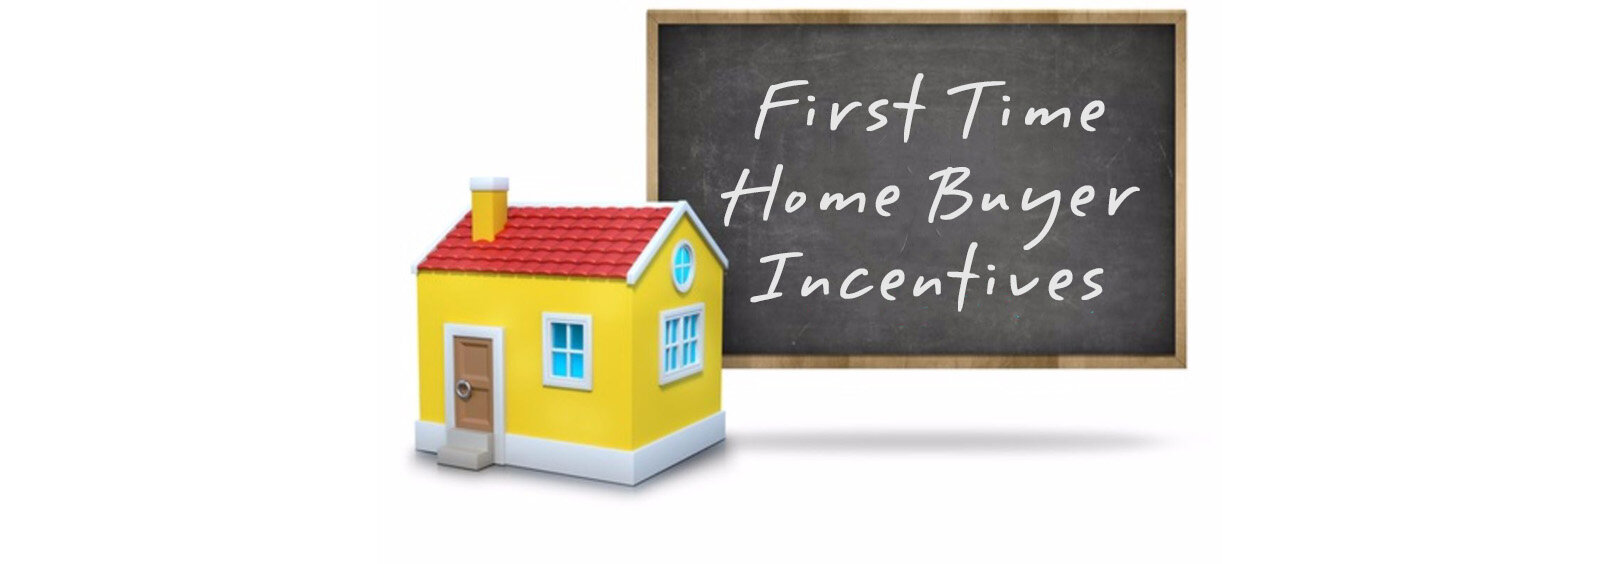 first time home buyer incentives.jpg